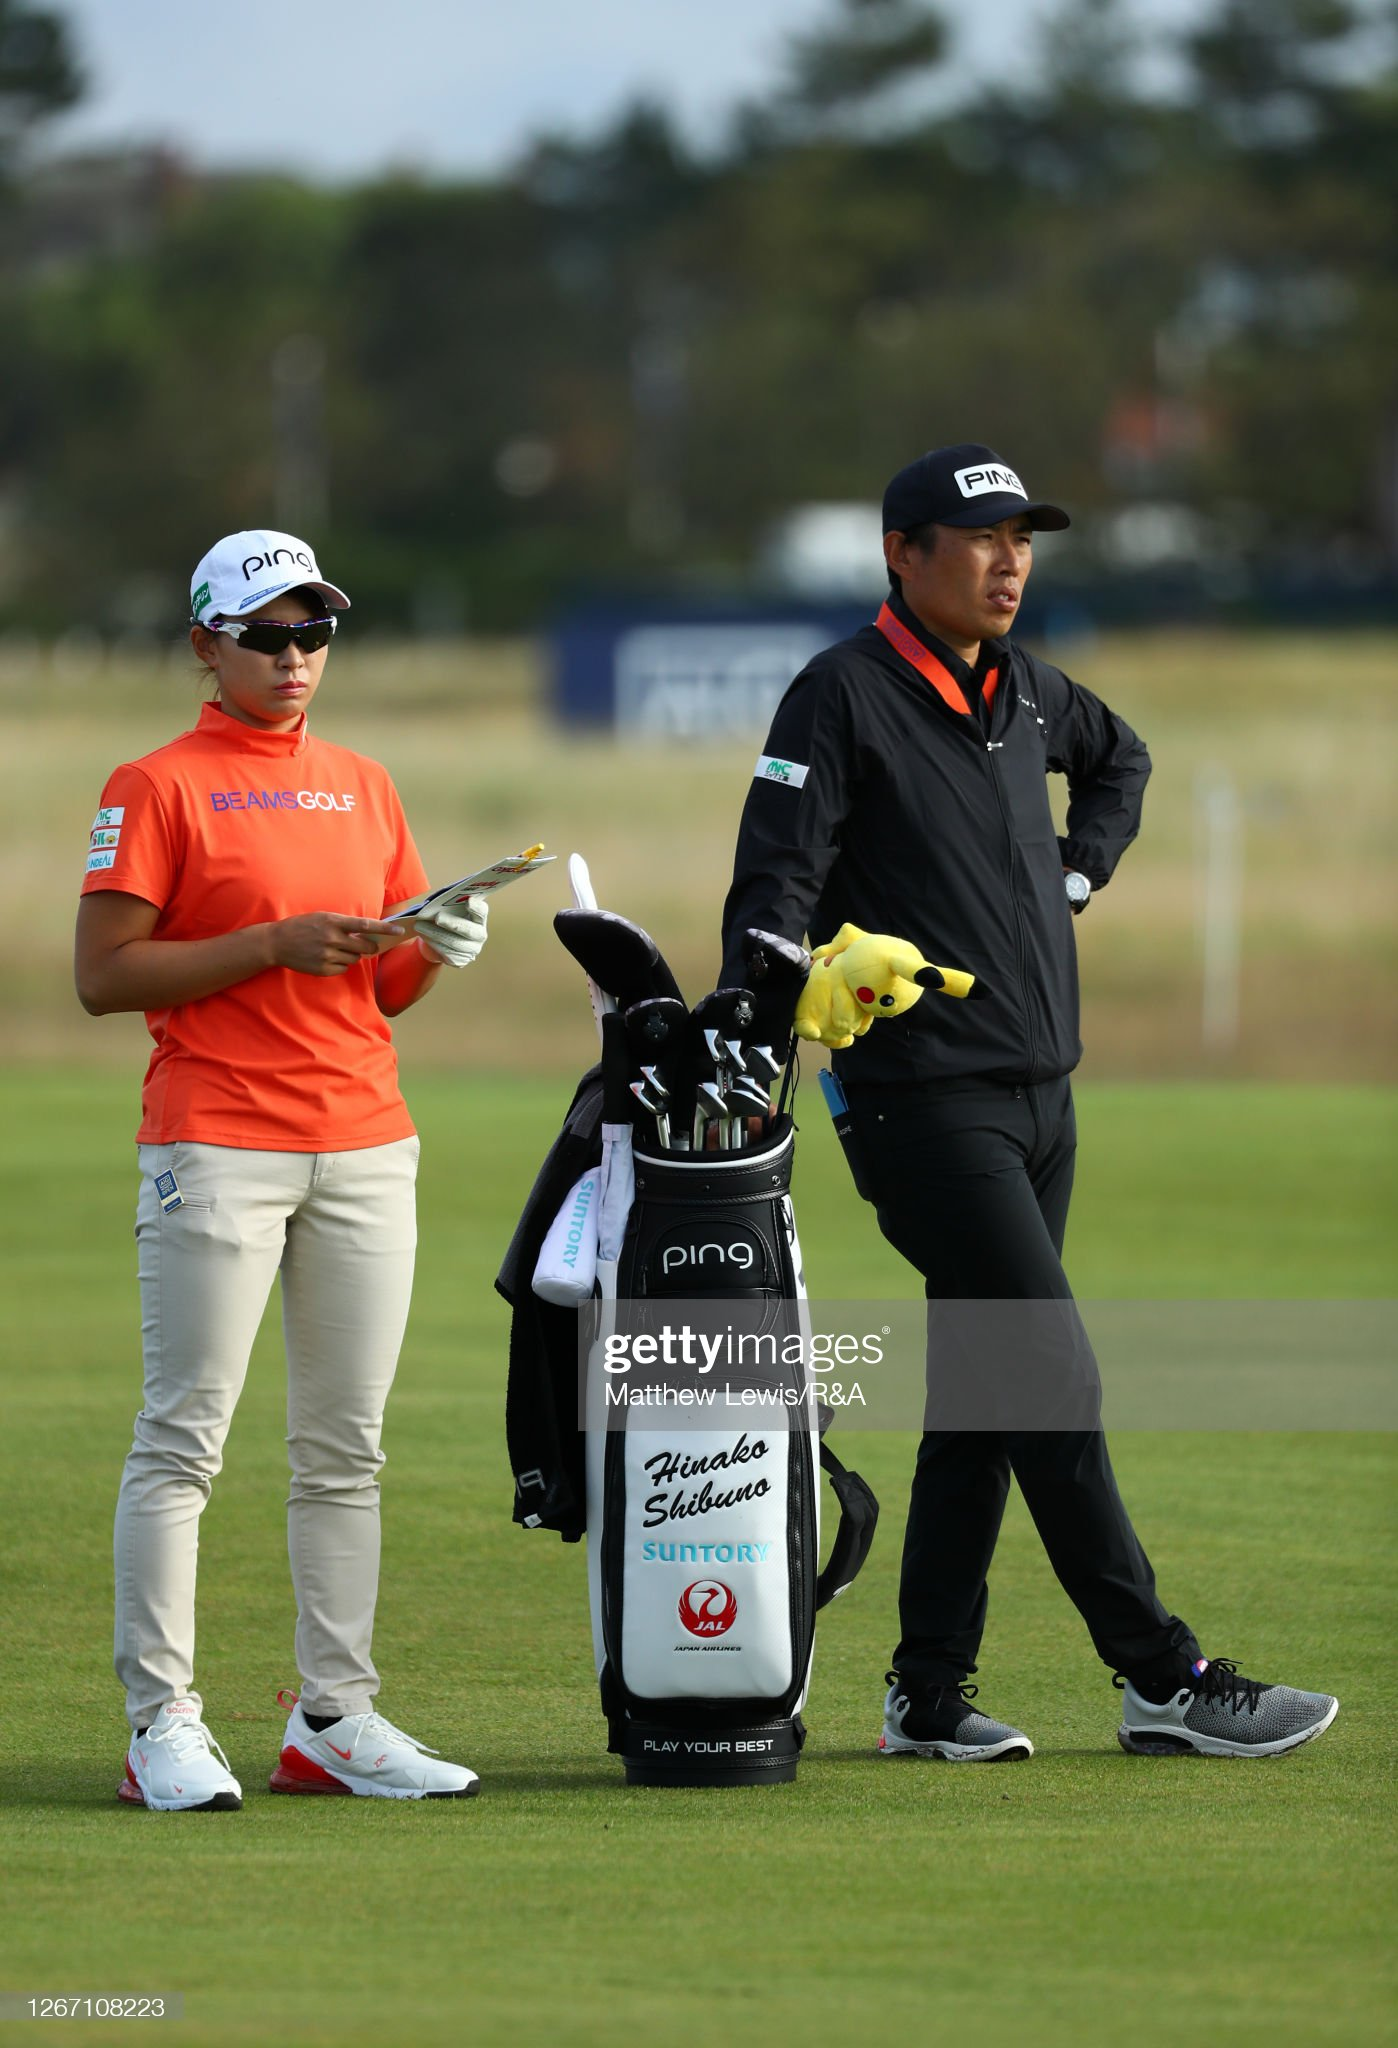 https://media.gettyimages.com/photos/hinakoshibuno-of-japan-speaks-to-her-caddie-sho-aoki-during-a-round-picture-id1267108223?s=2048x2048